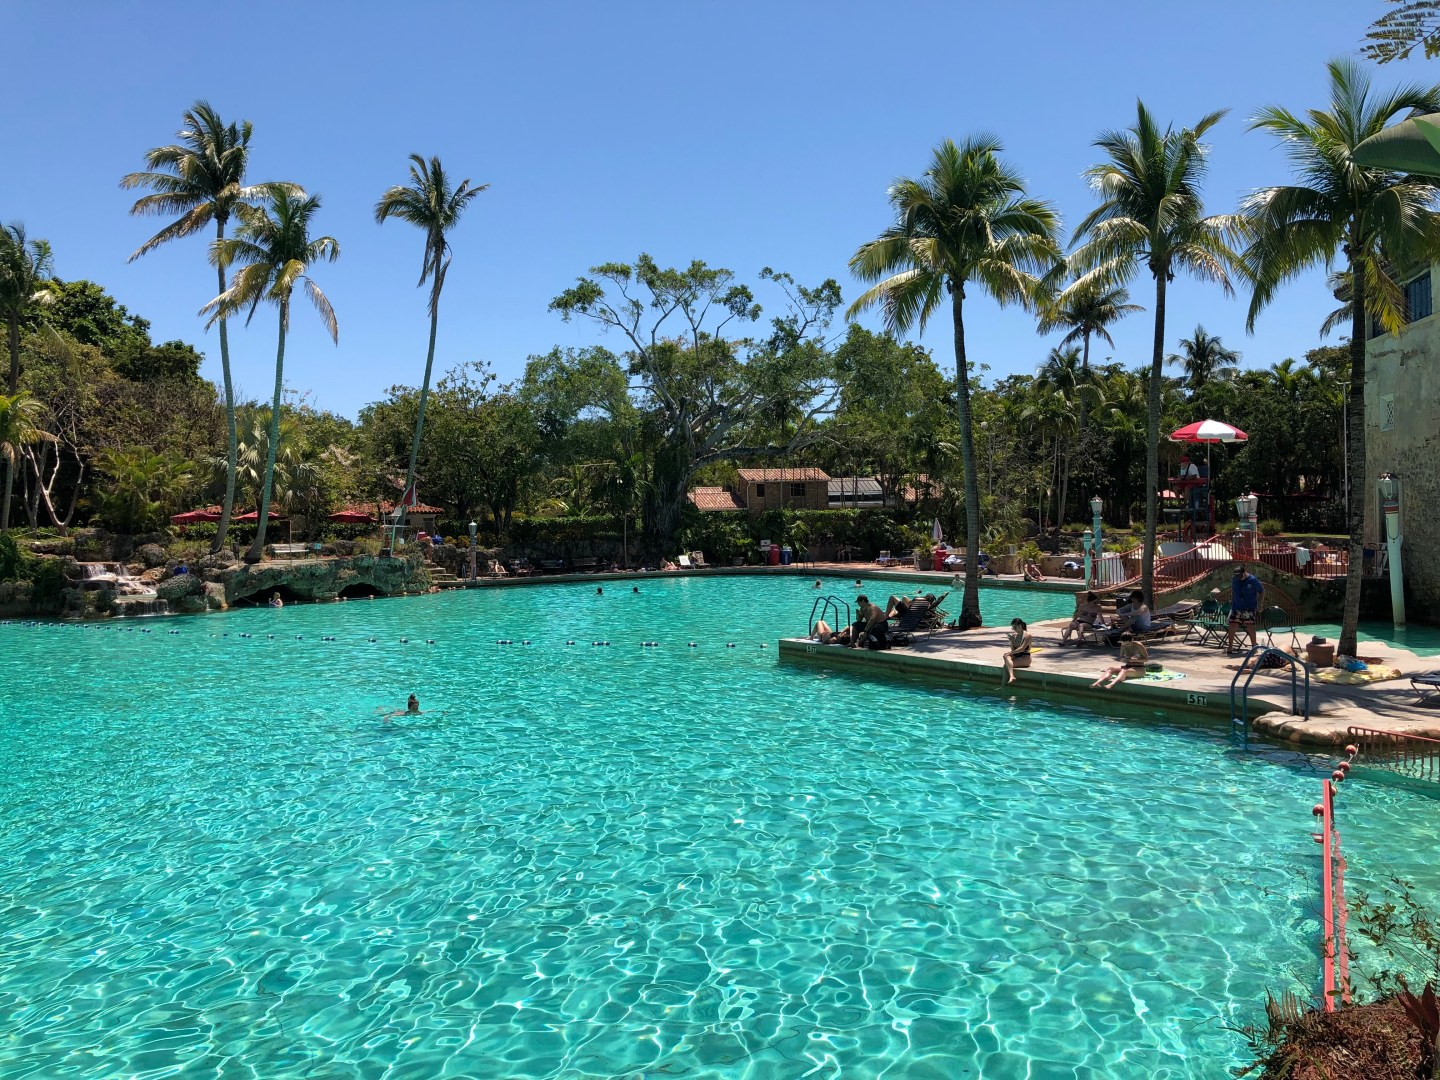 The Venetian Pool is One of Miami's Hidden Gems